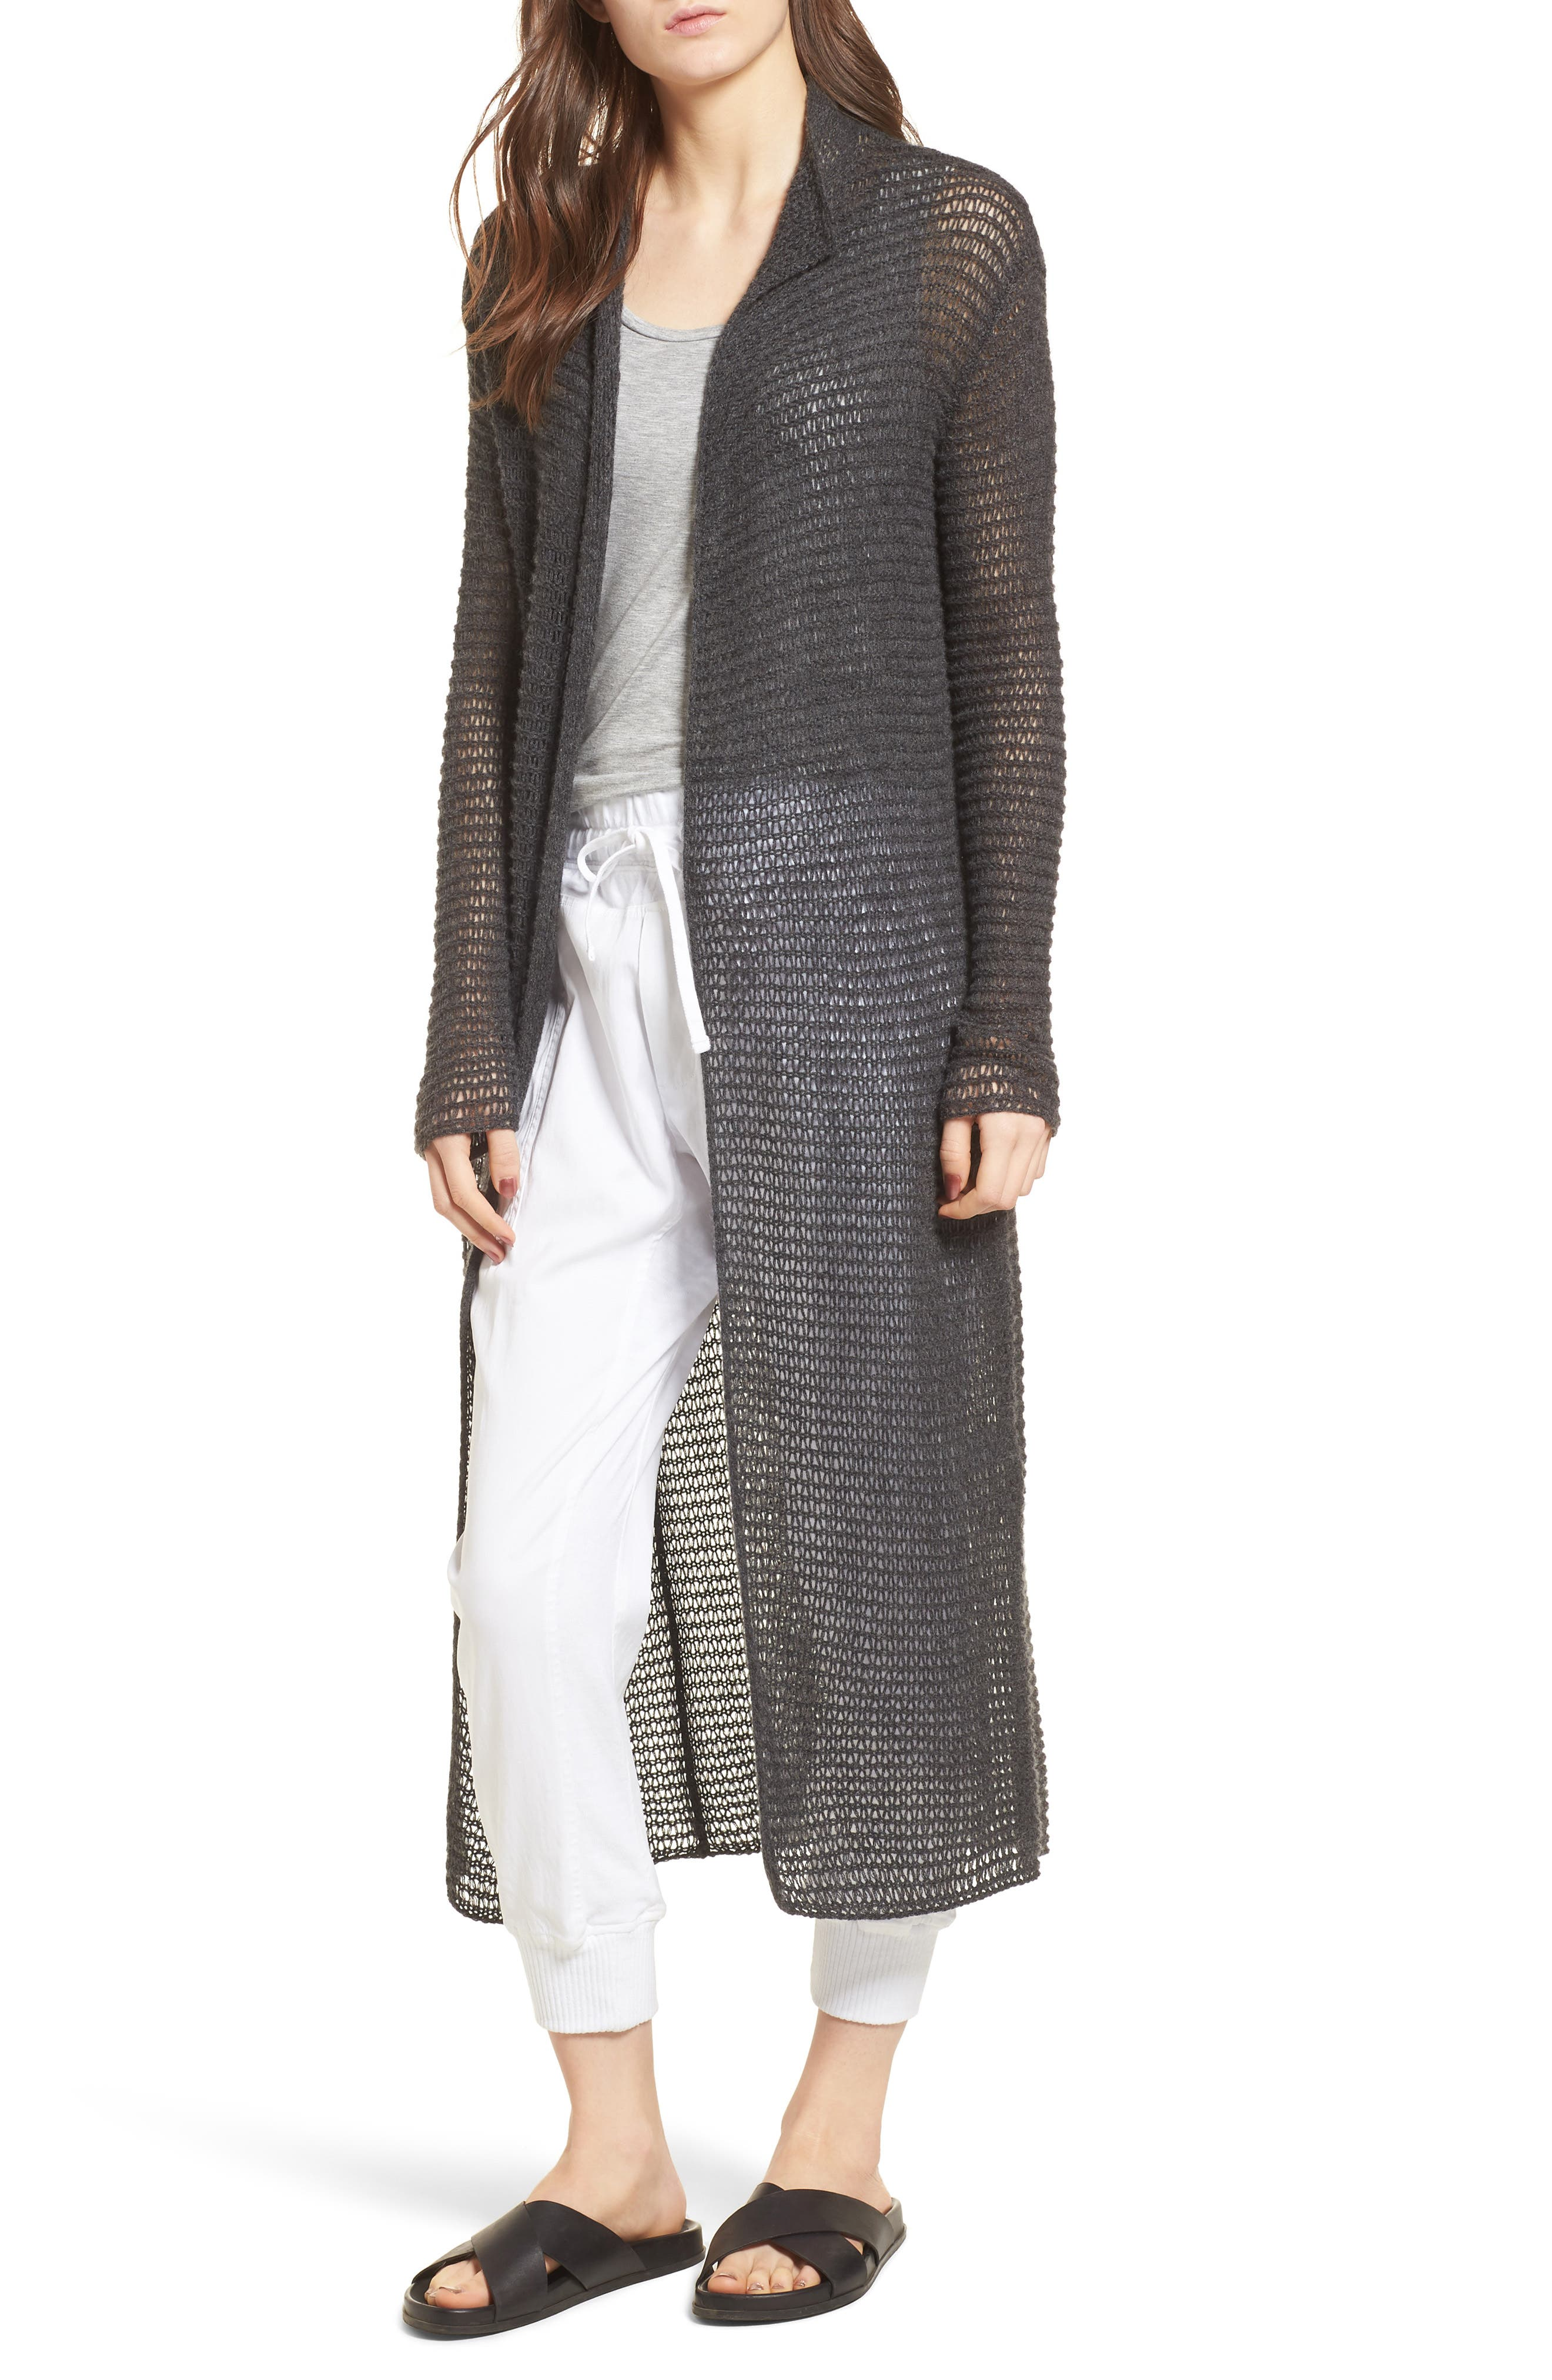 James Perse Open Knit Cashmere Duster Cardigan